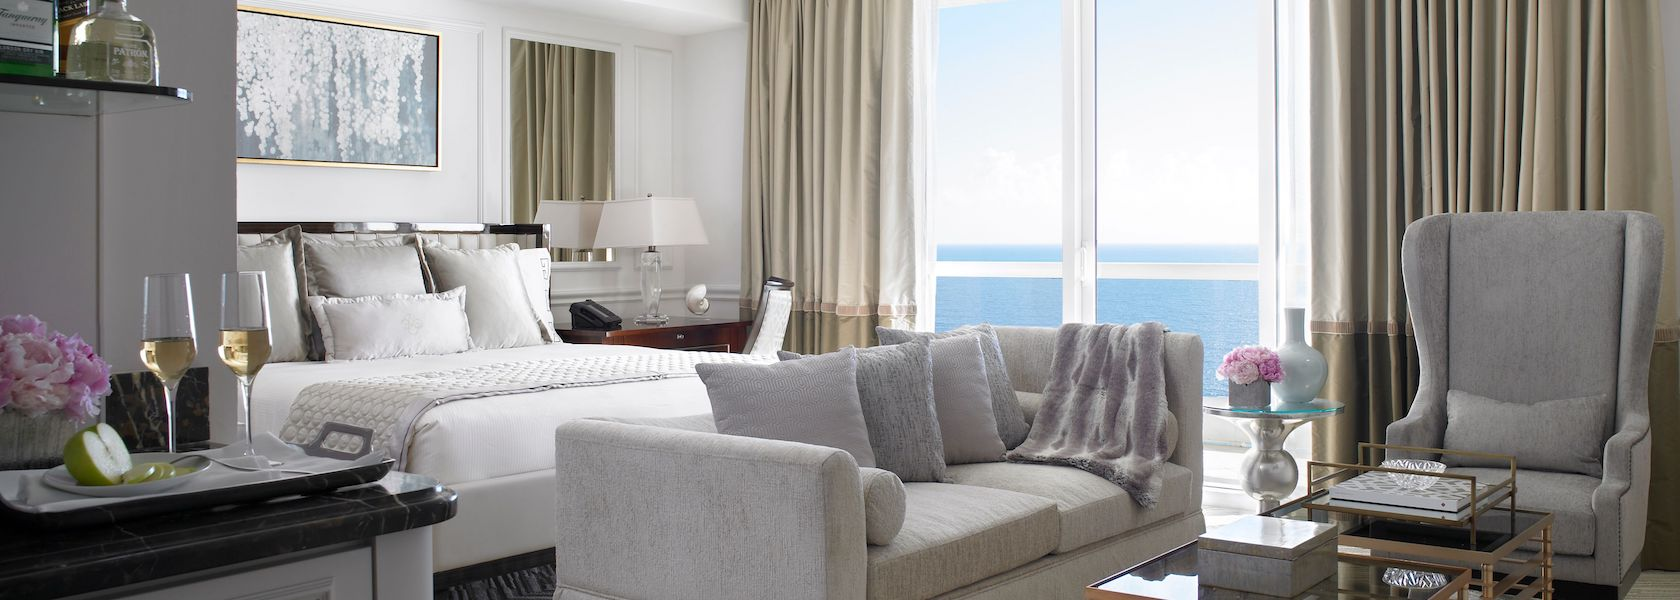 Suite with ocean view at Acqualina Resort & Spa